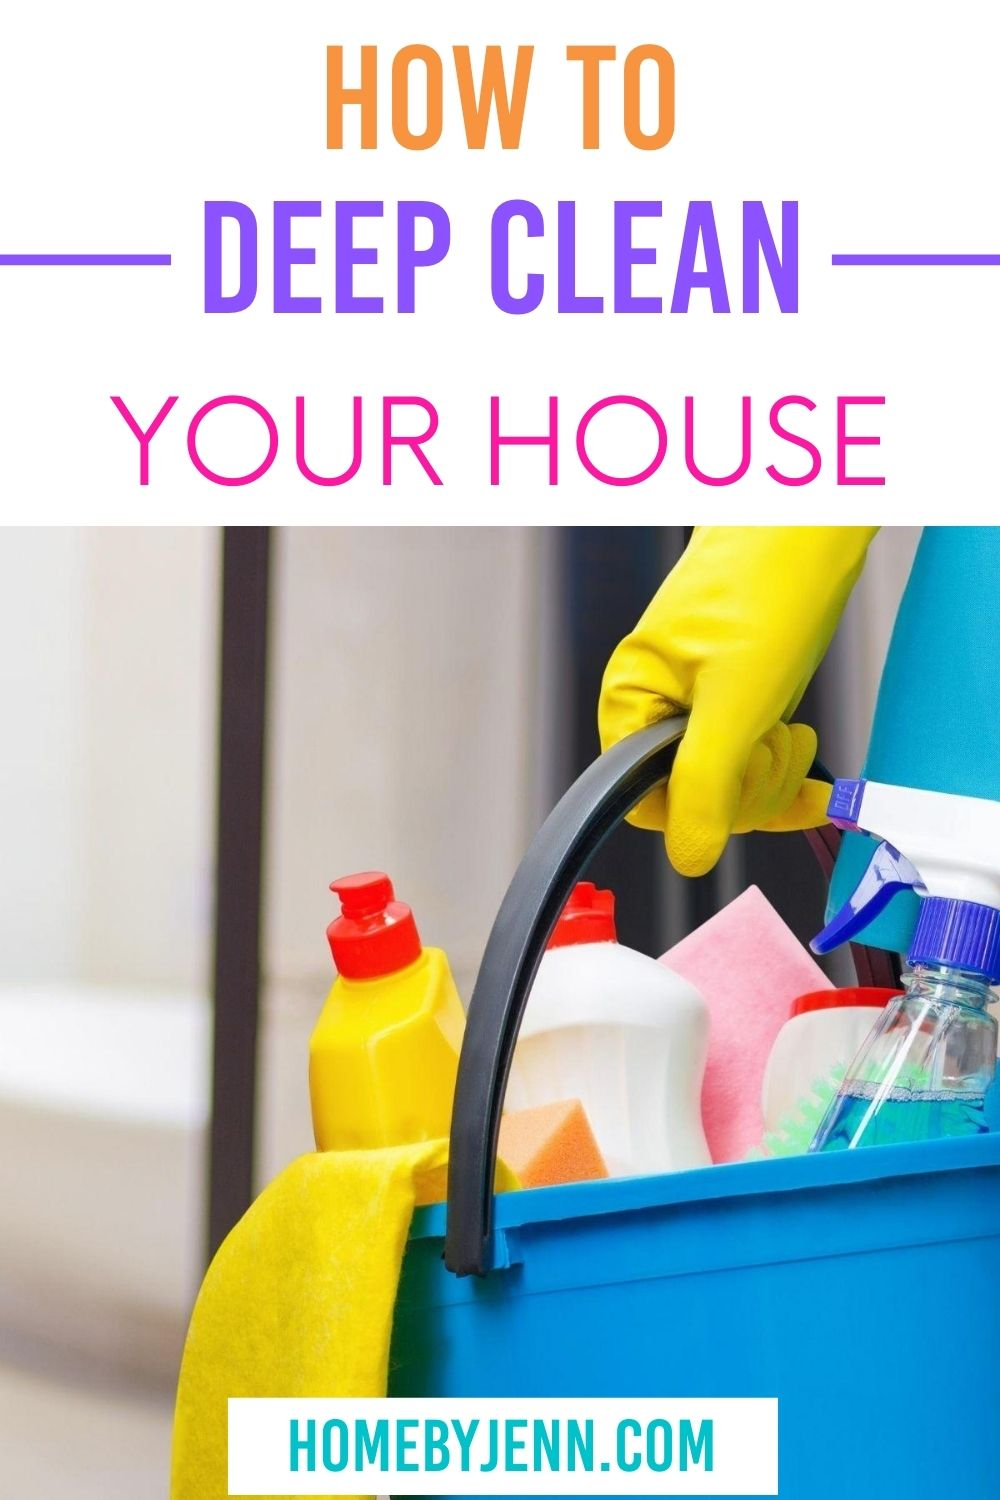 Wondering how to deep clean your house? These simple tips will make all those germs go away! Not too mention, cleaning will help you declutter as well! Don't feel overwhelmed by the thought of spring cleaning! Instead, put it into an easy cleaning checklist so you can tackle areas of your home one by one! These easy tips will have you not dreading cleaning your home any longer and having you gear up to tackle the rest of the house. #cleaning #DIY #springcleaning #cleaningchecklist #deepclean via @homebyjenn